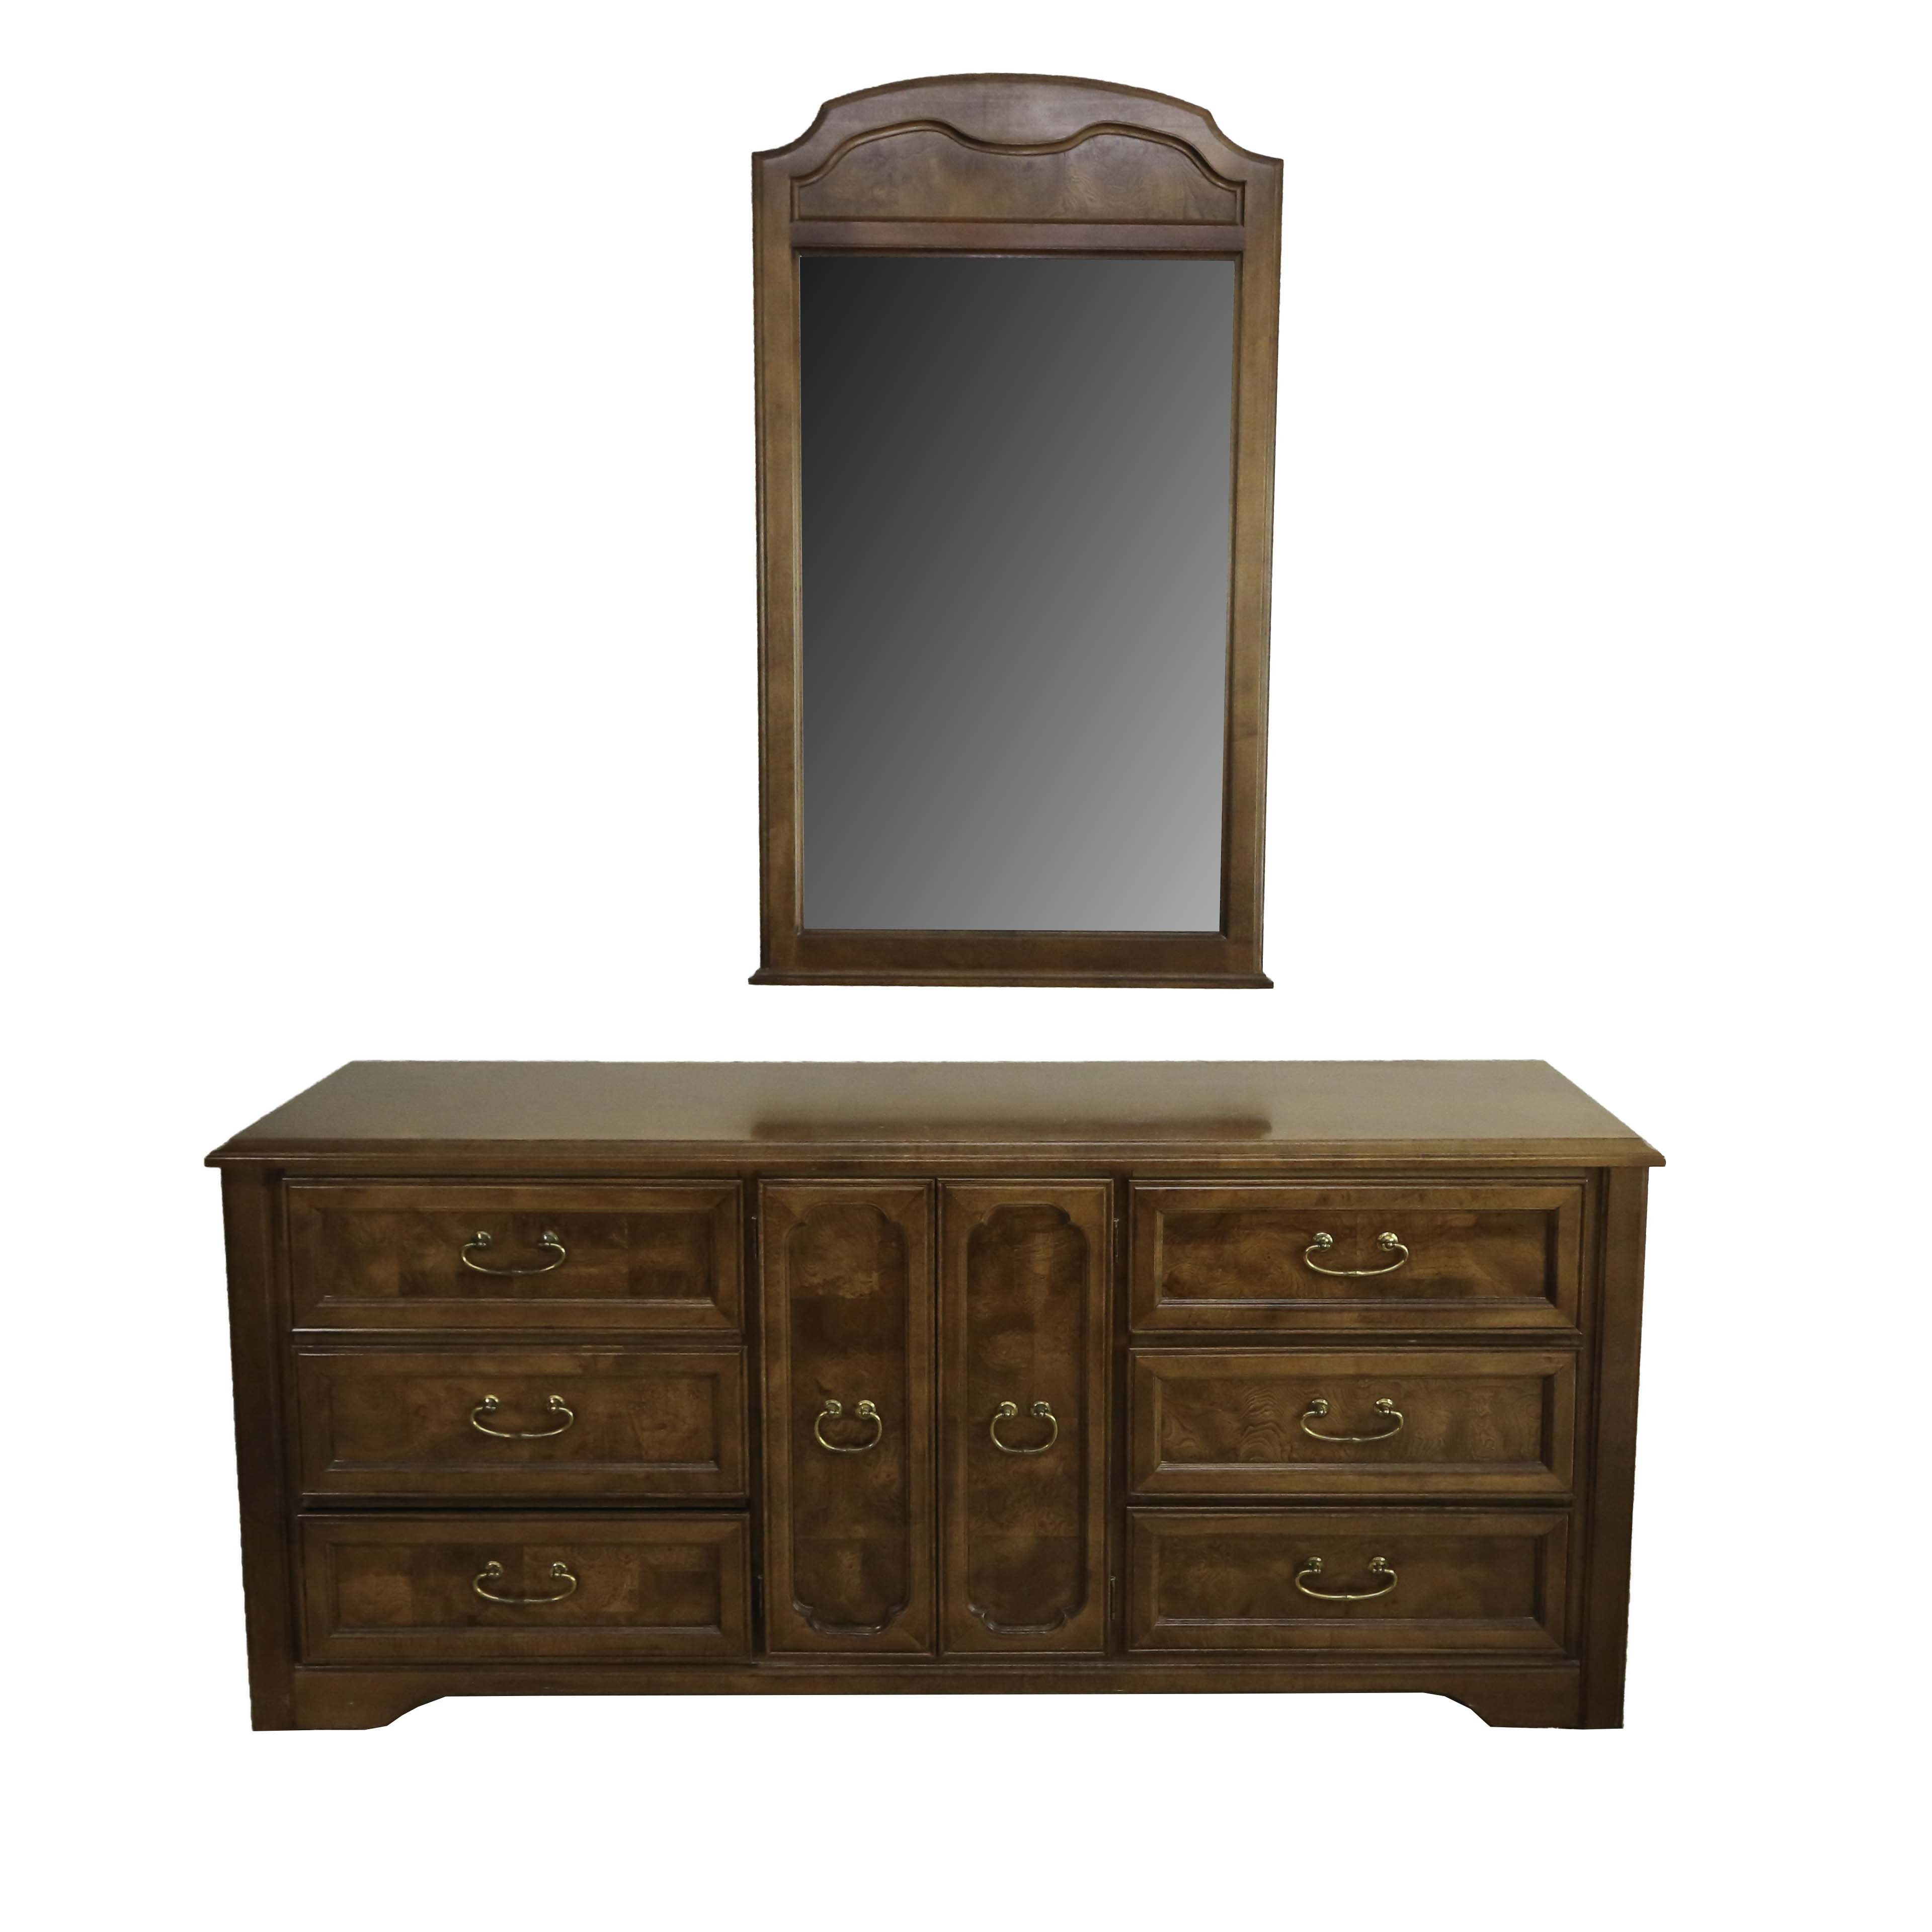 Burl Accent Chest of Drawers with Mirror